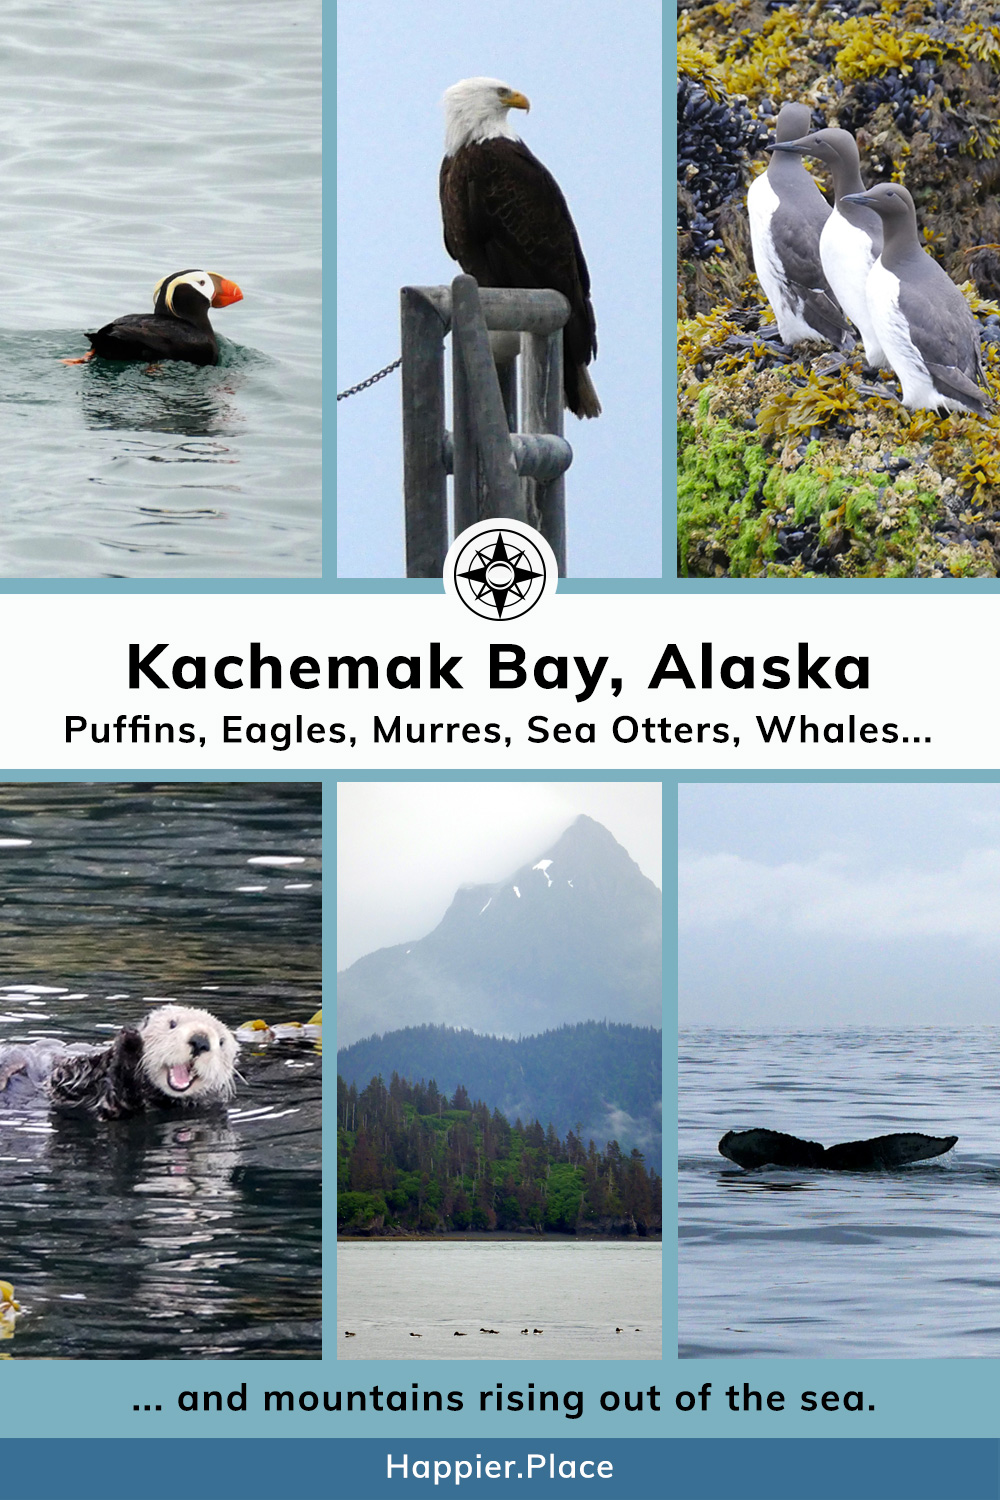 Kachemak Bay and Homer Alaska where you can see puffins, eagles, murres, sea otters, and whales - and mountains rising from the sea. #HappierPlace #Alaska